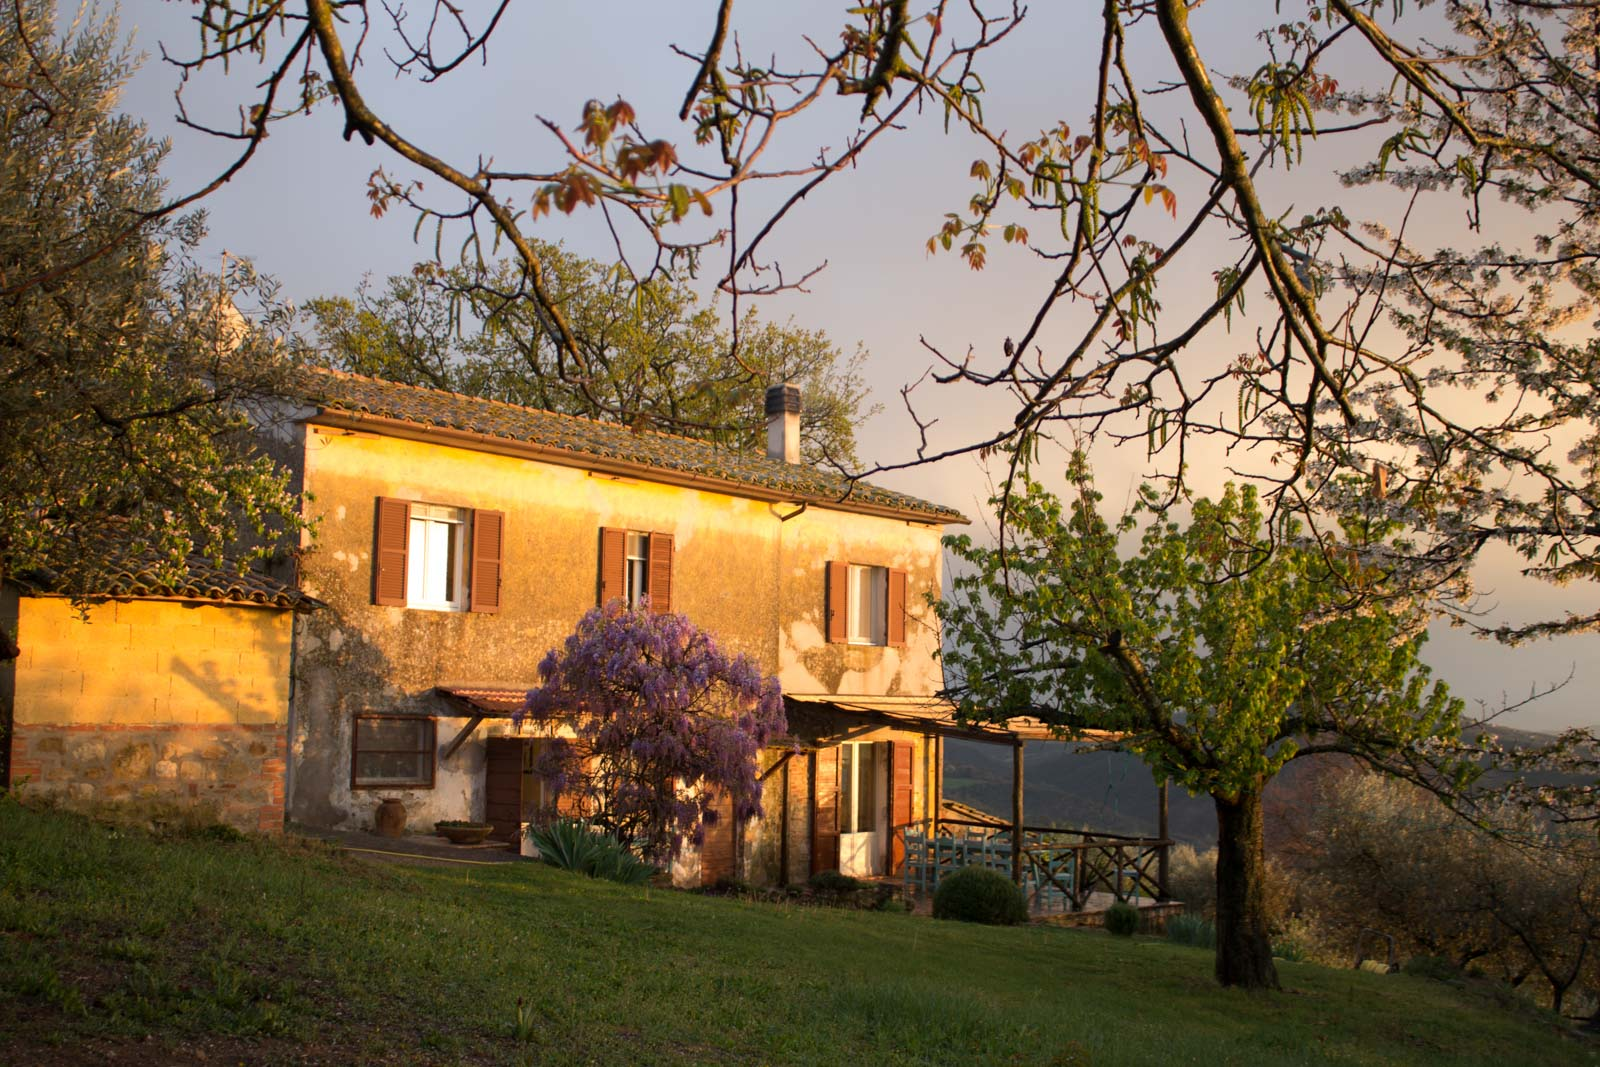 Renting a villa in Umbria, Italy